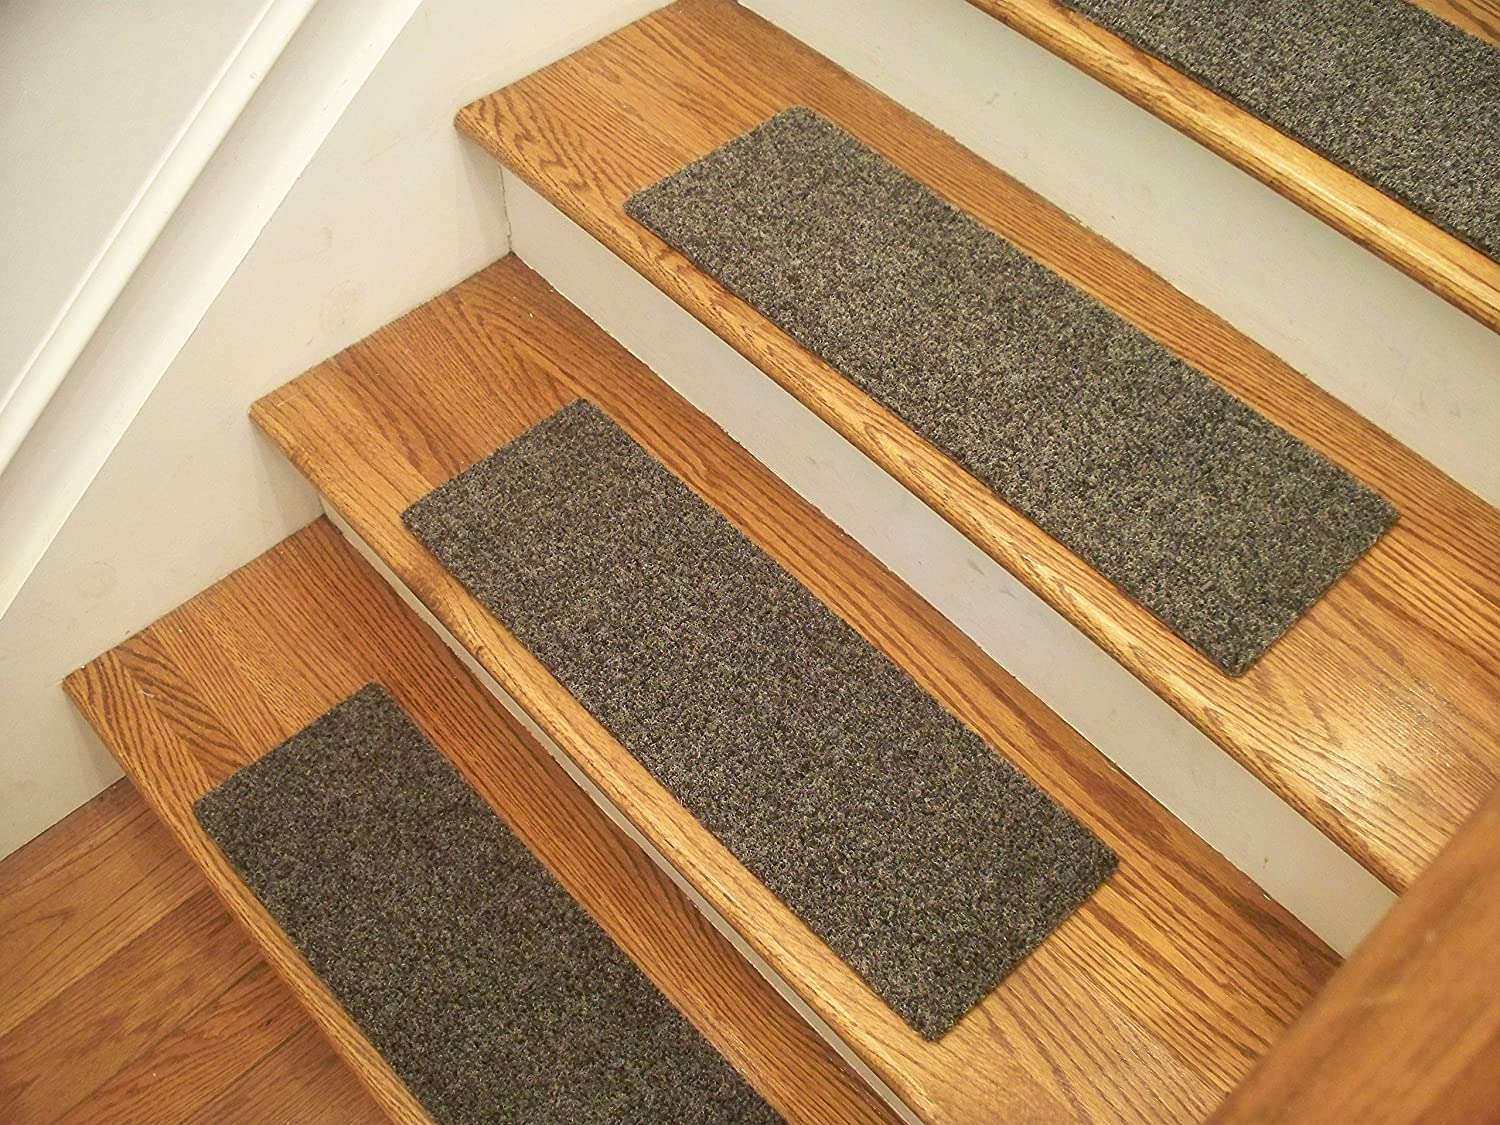 Essential Carpet Stair Treads - Style: Brush - Color: Graphite Gray - Size: 24' x 8' - Set of 4 Essential Specialty Products 660335151909